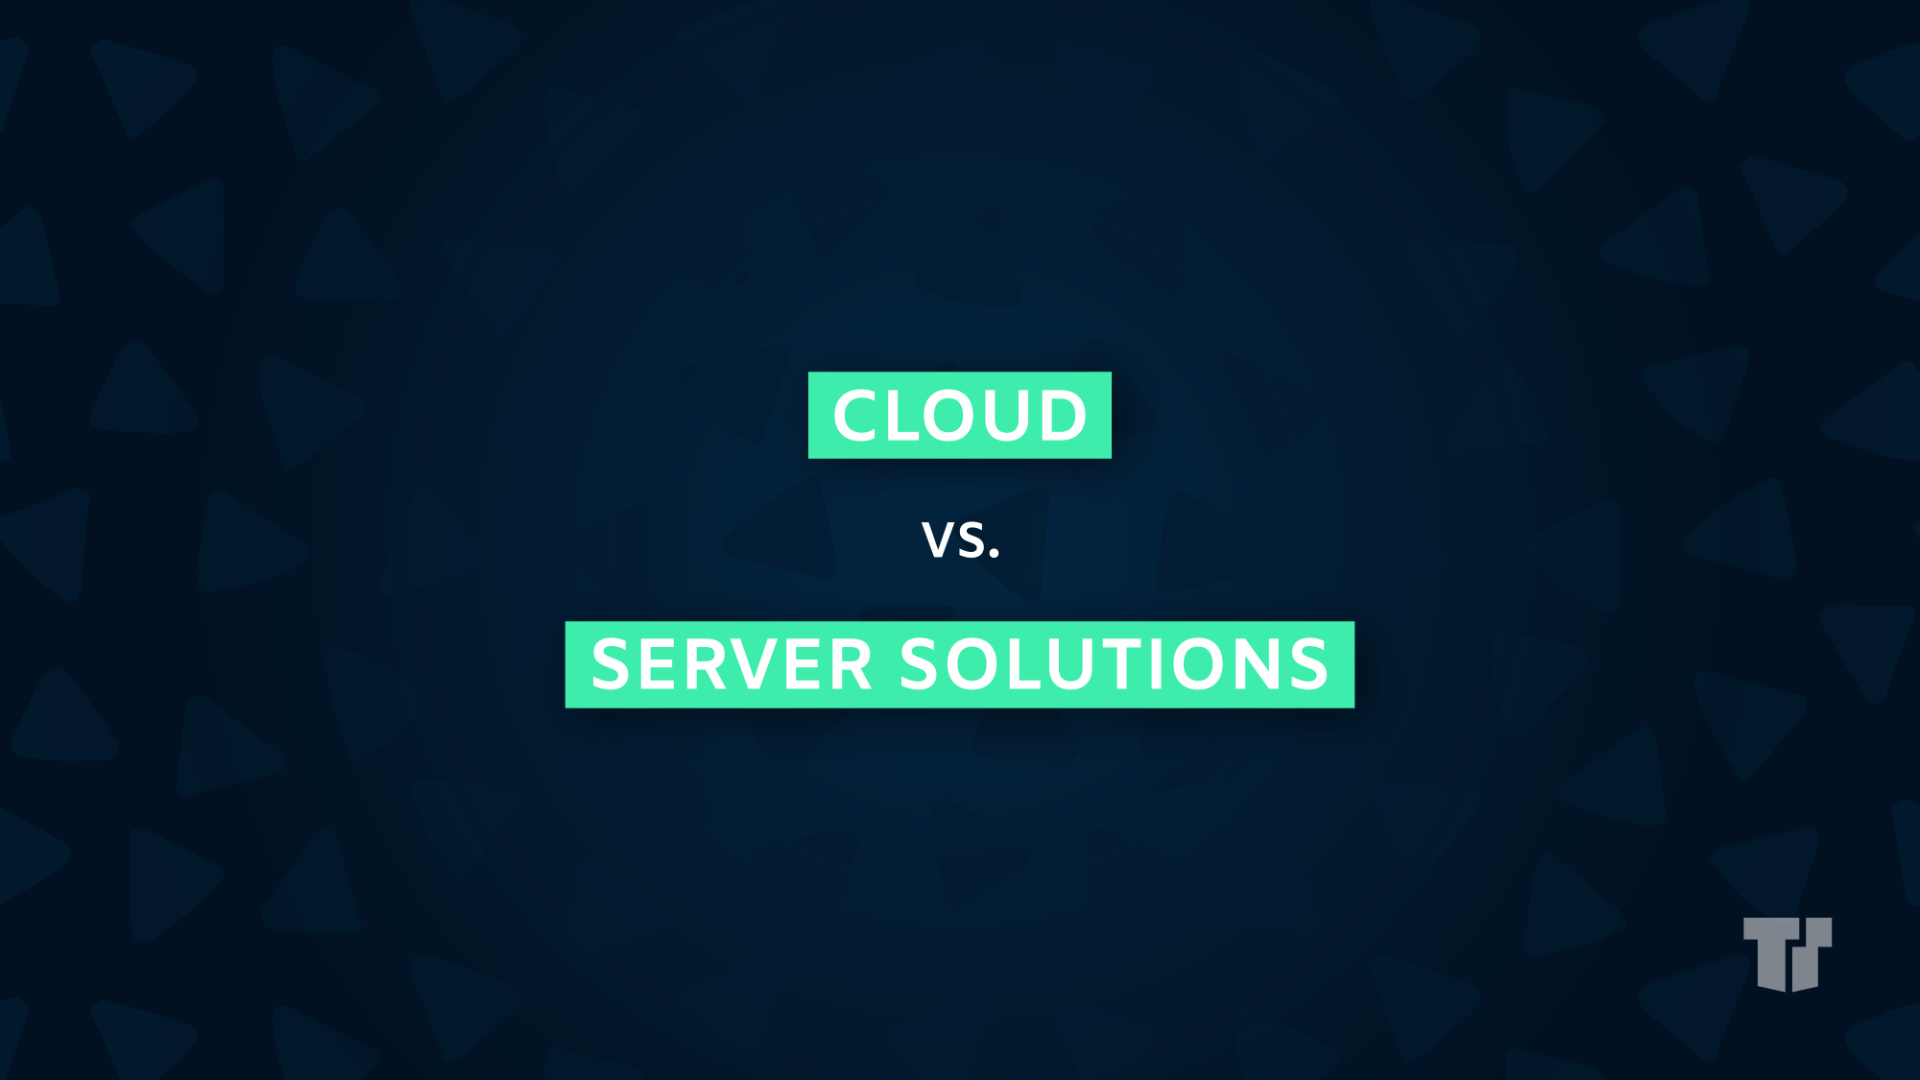 Cloud vs. Server Solutions cover image